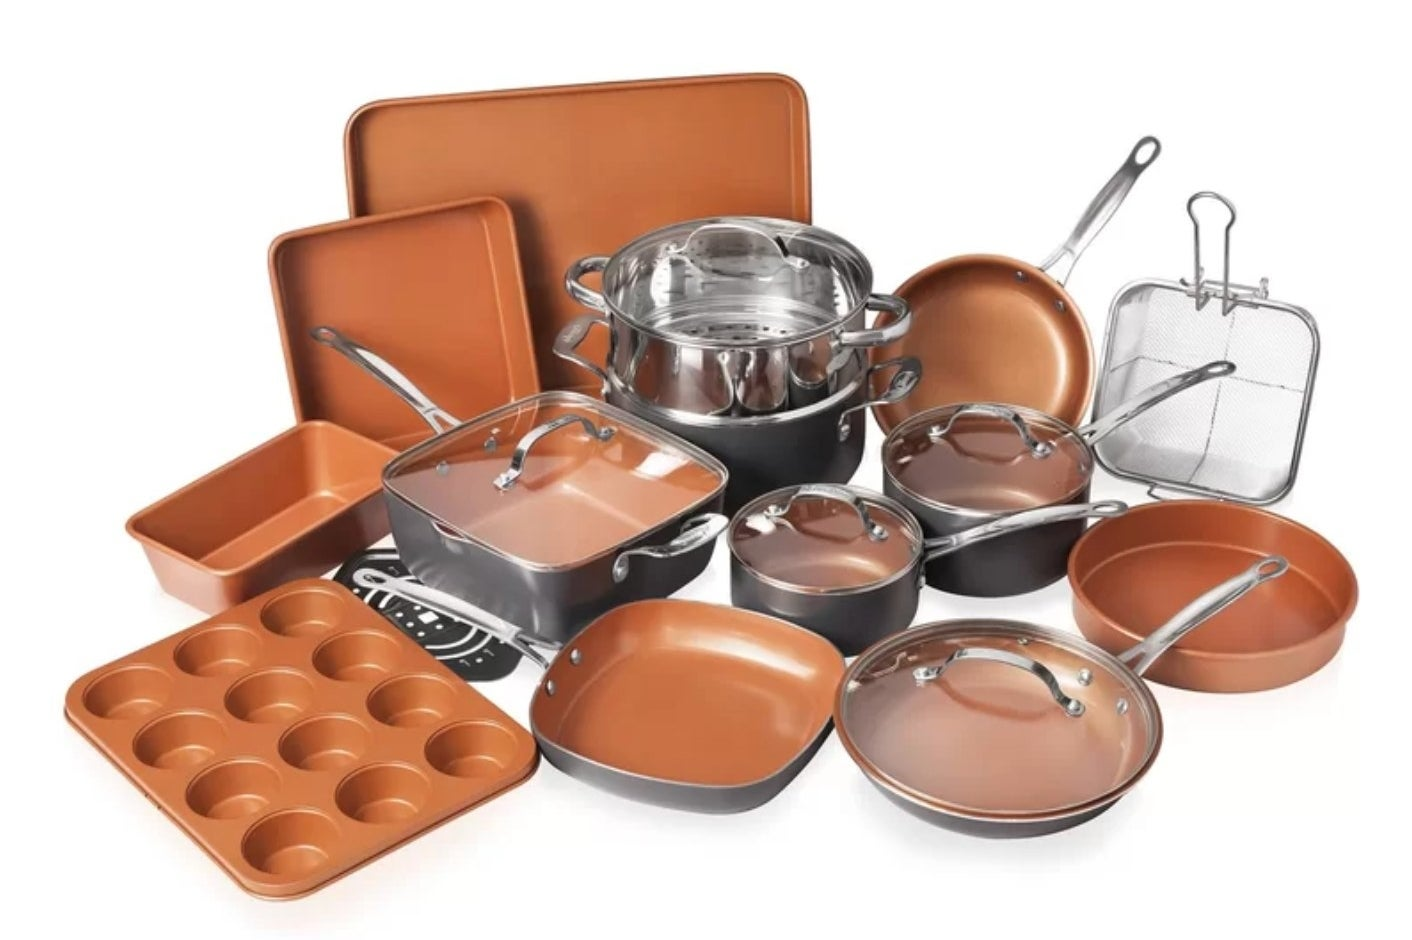 The 20 piece nonstick cookware set in orange and wilver